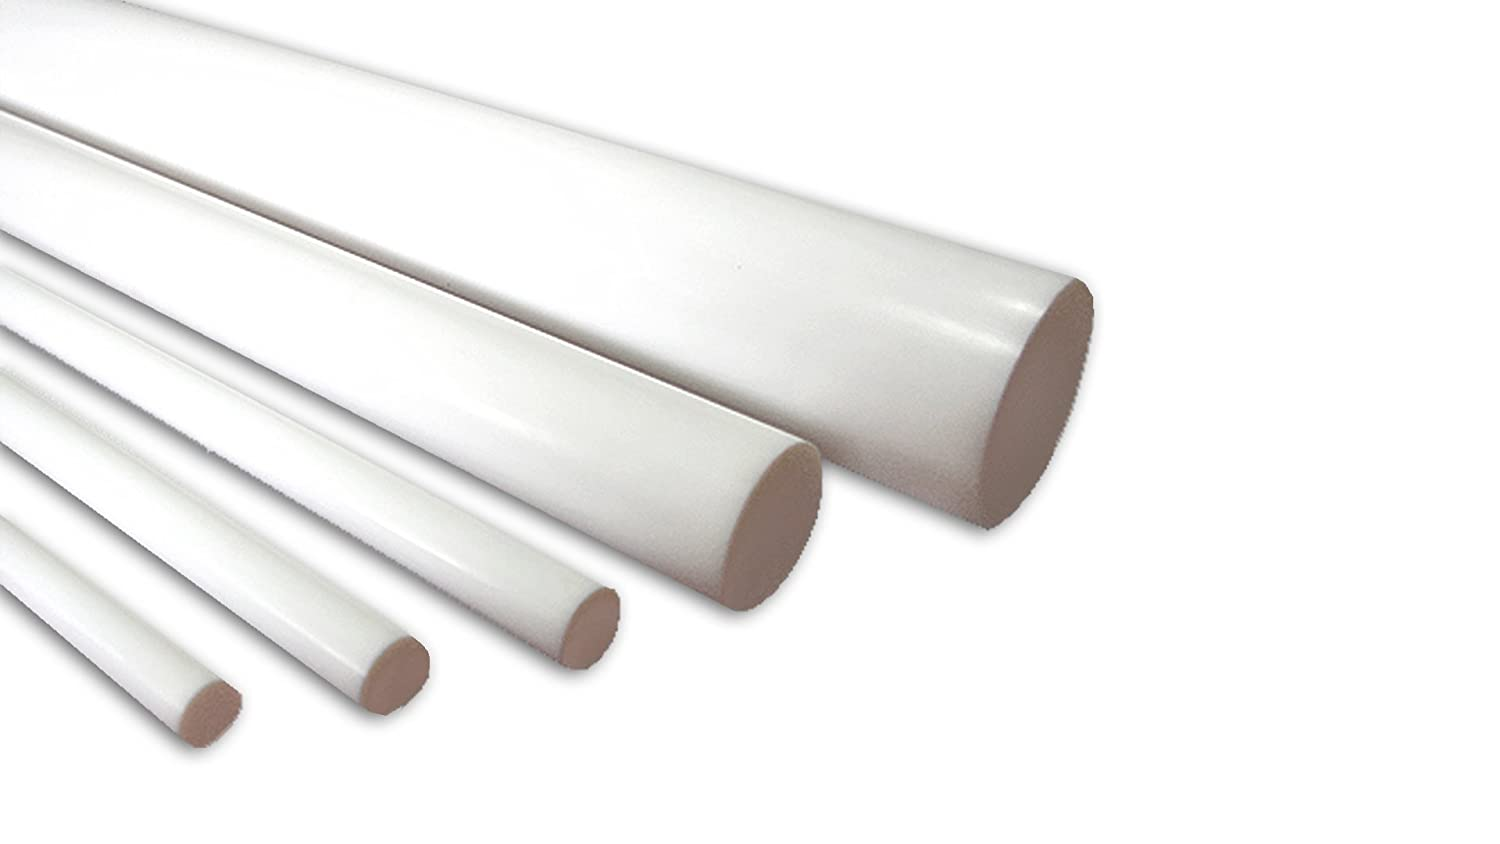 5//8 9//16 Medium to Large Diameter Sample test pack Pack of 5 3 lengths: Diameters-1//2 11//16 Sterling Seal TFEROD3MD.LGPACK Virgin PTFE Round ROD Material 3//4 included in this pack.